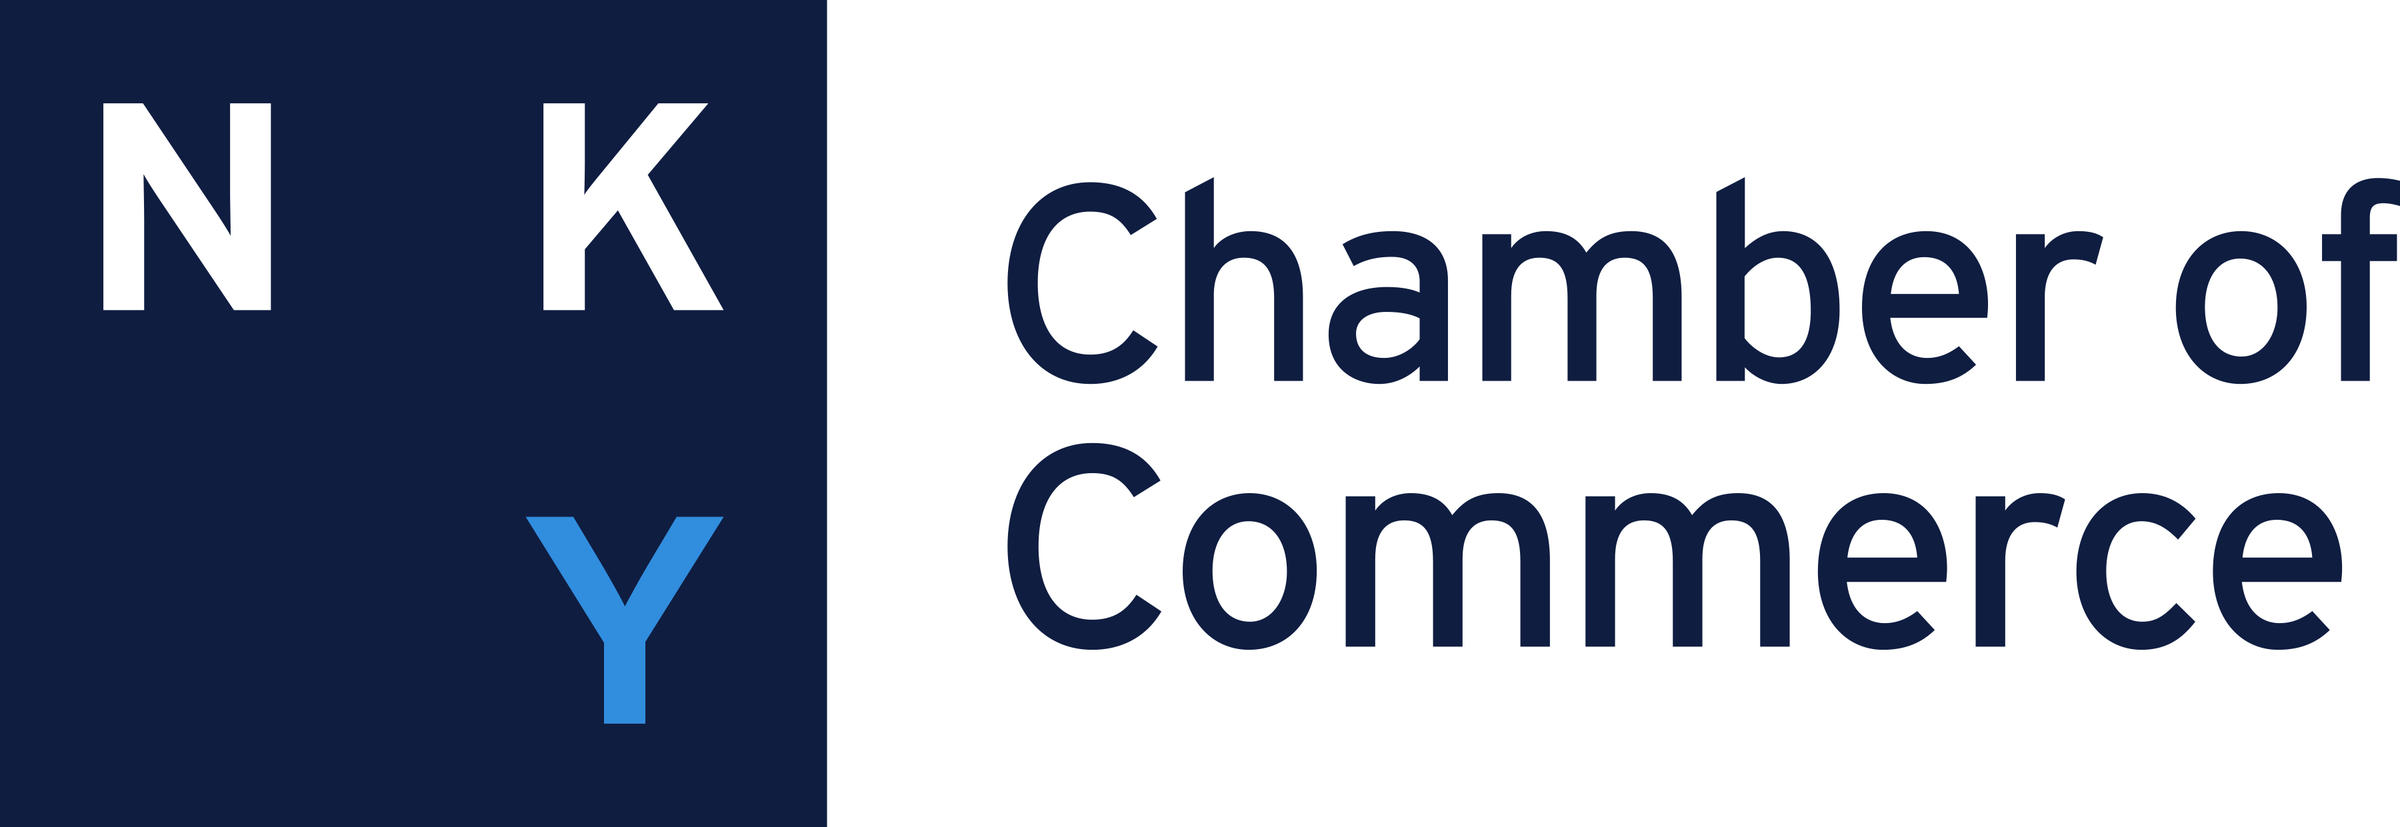 Northern Kentucky Chamber of Commerce Logo